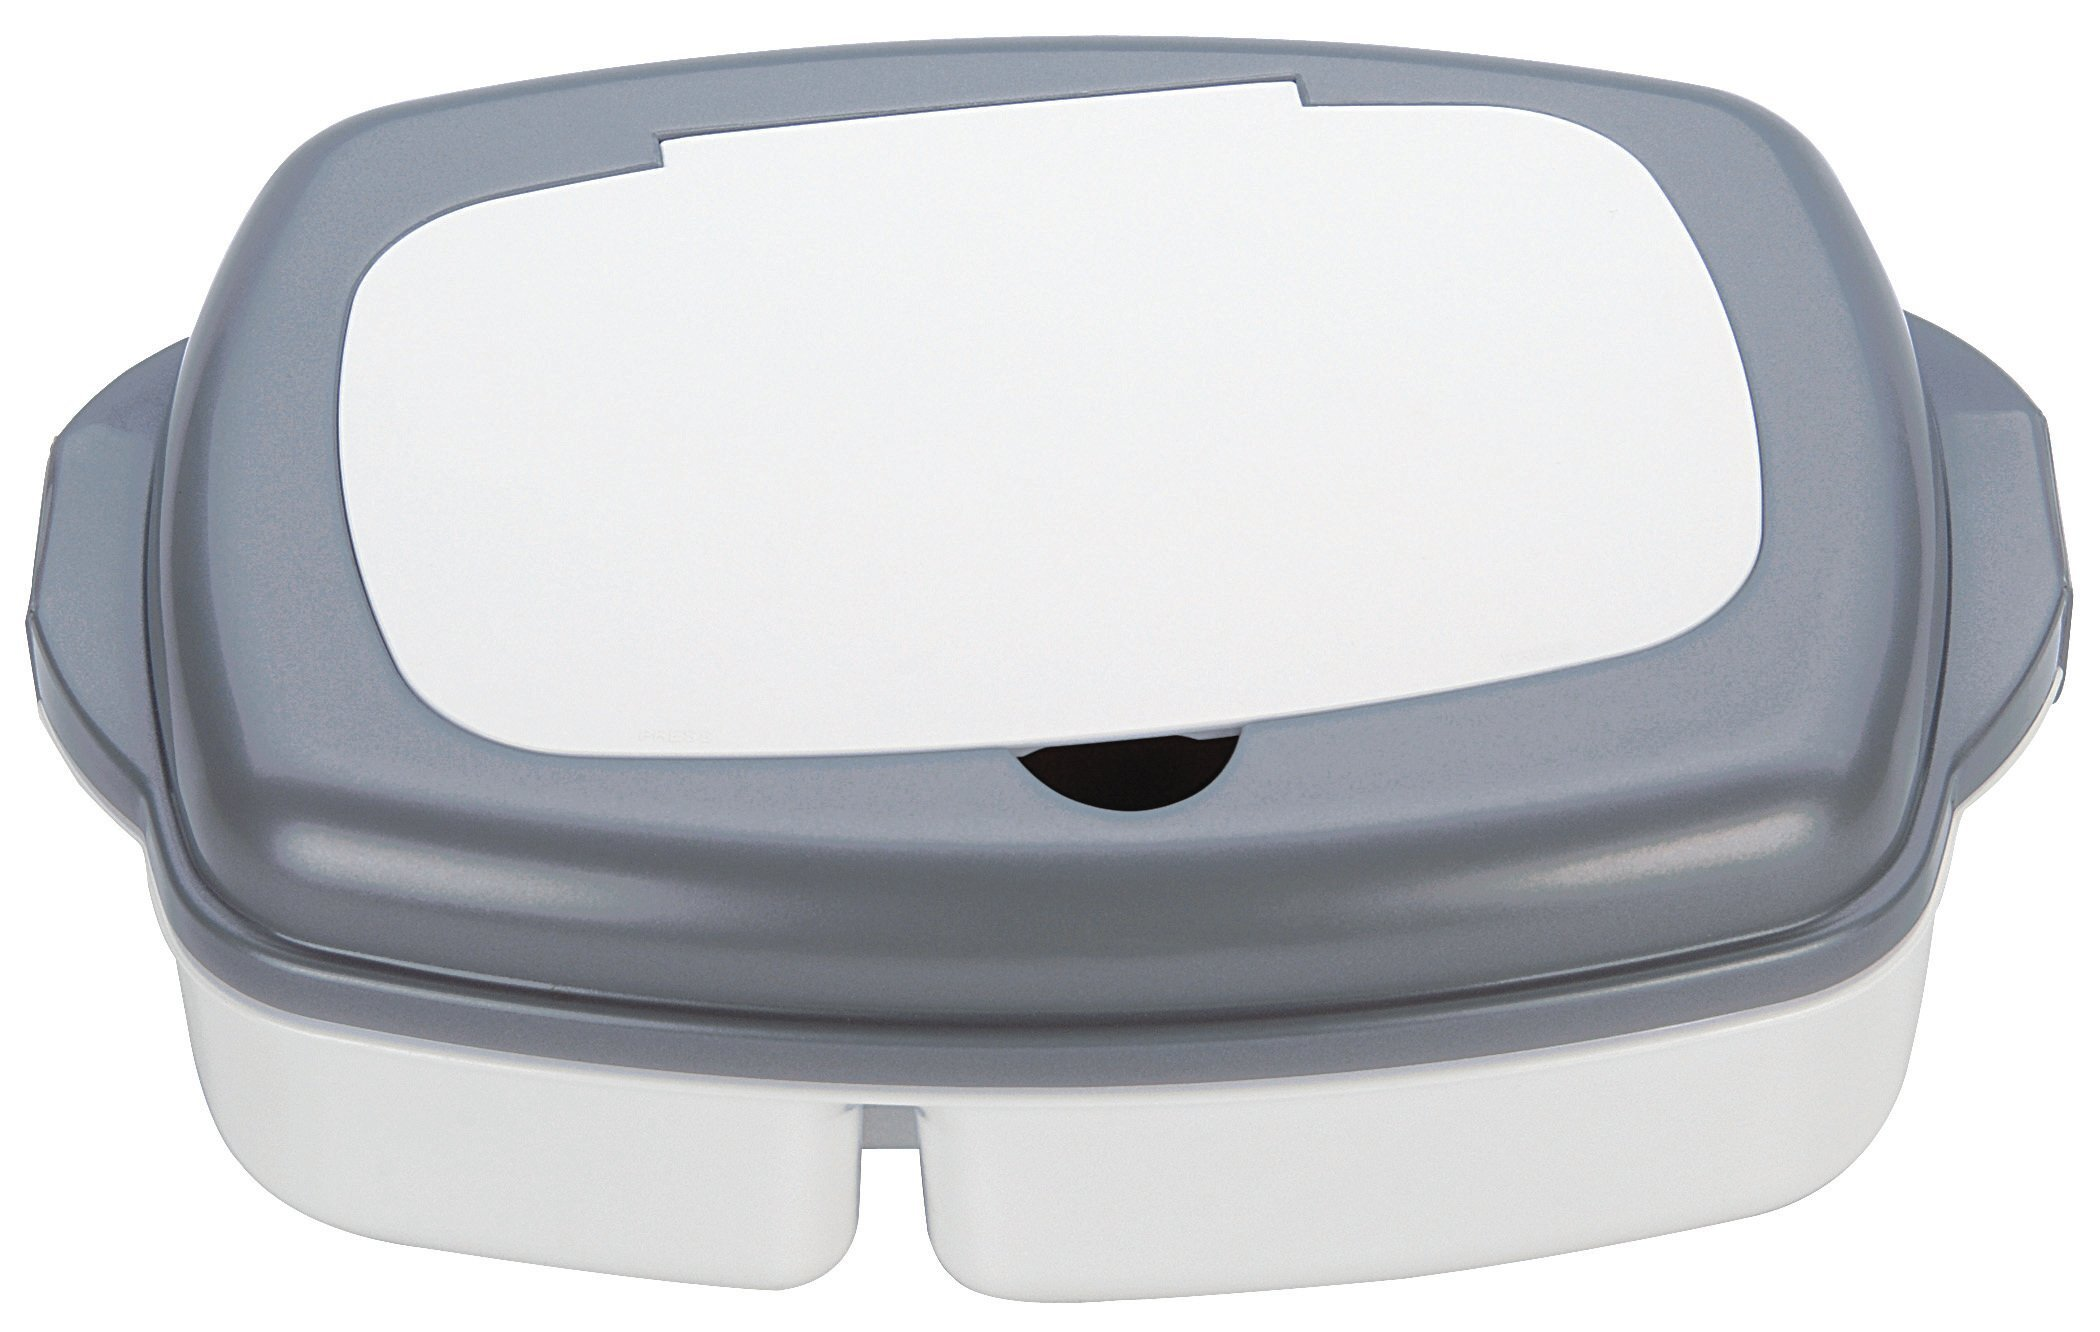 Cool Gear® Lunch to Go Food Storage Container